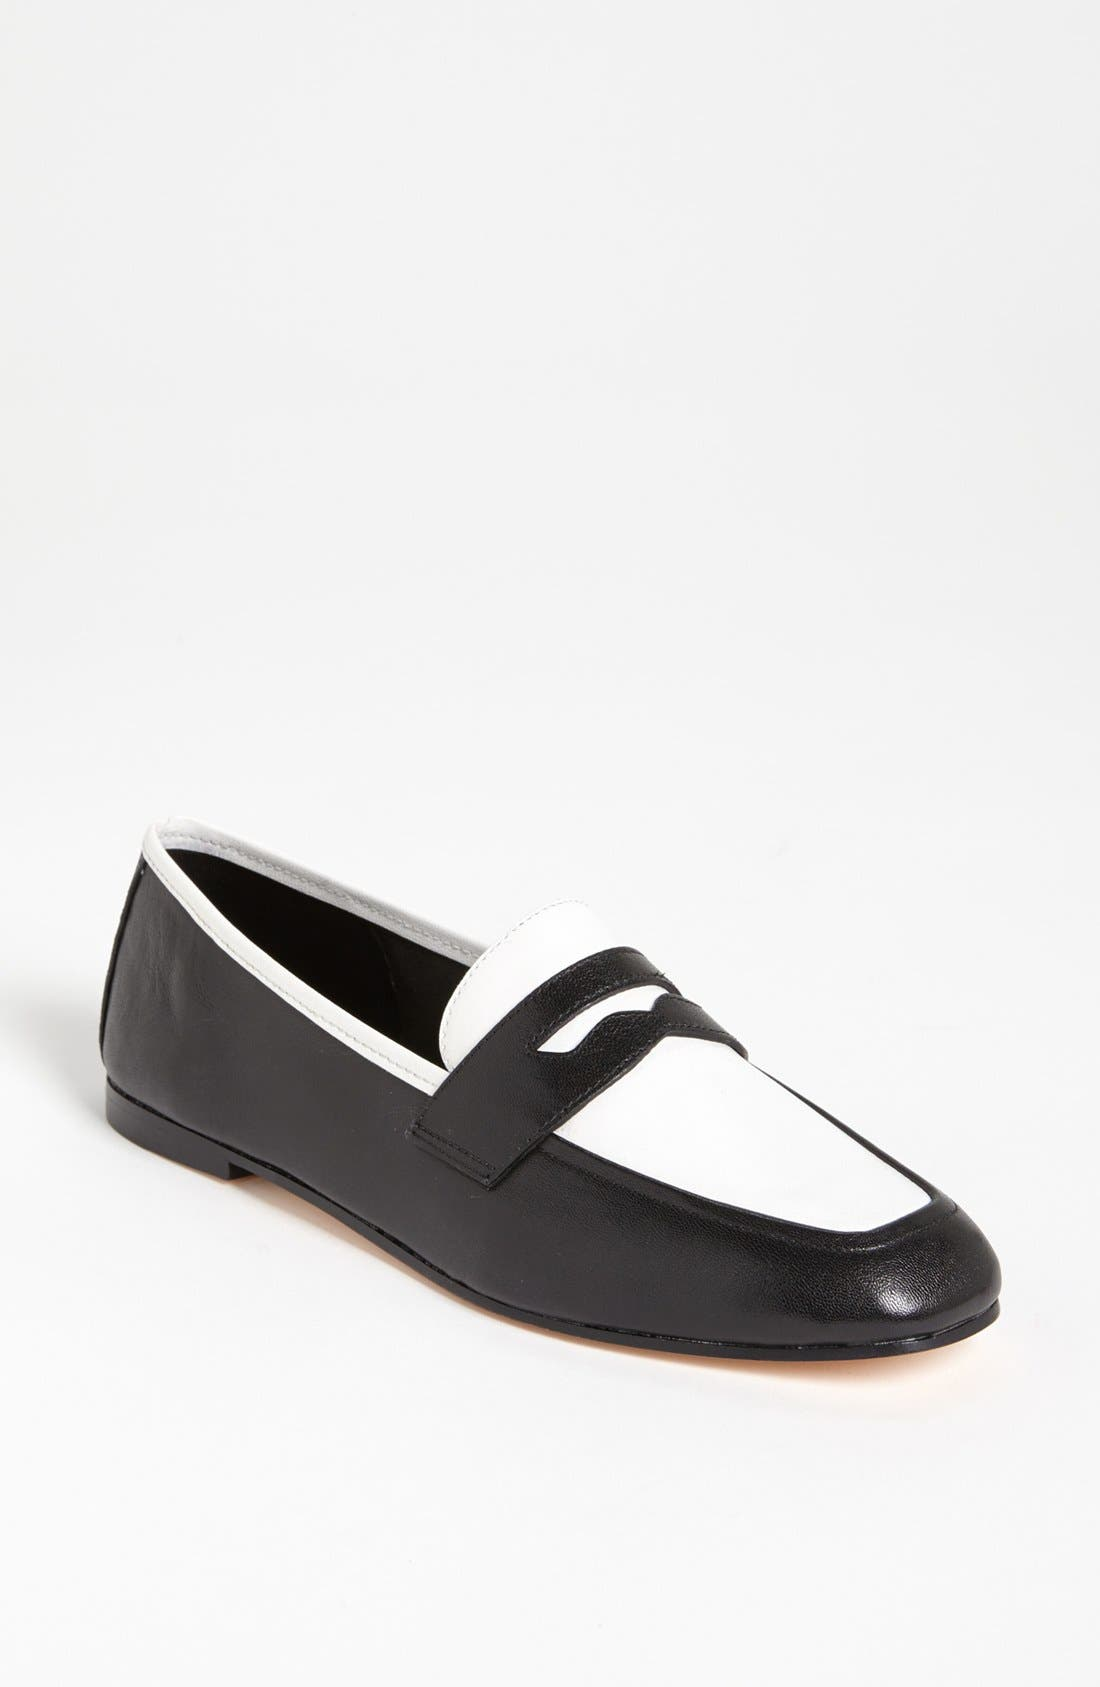 Main Image - IVANKA TRUMP SASHA LOAFER